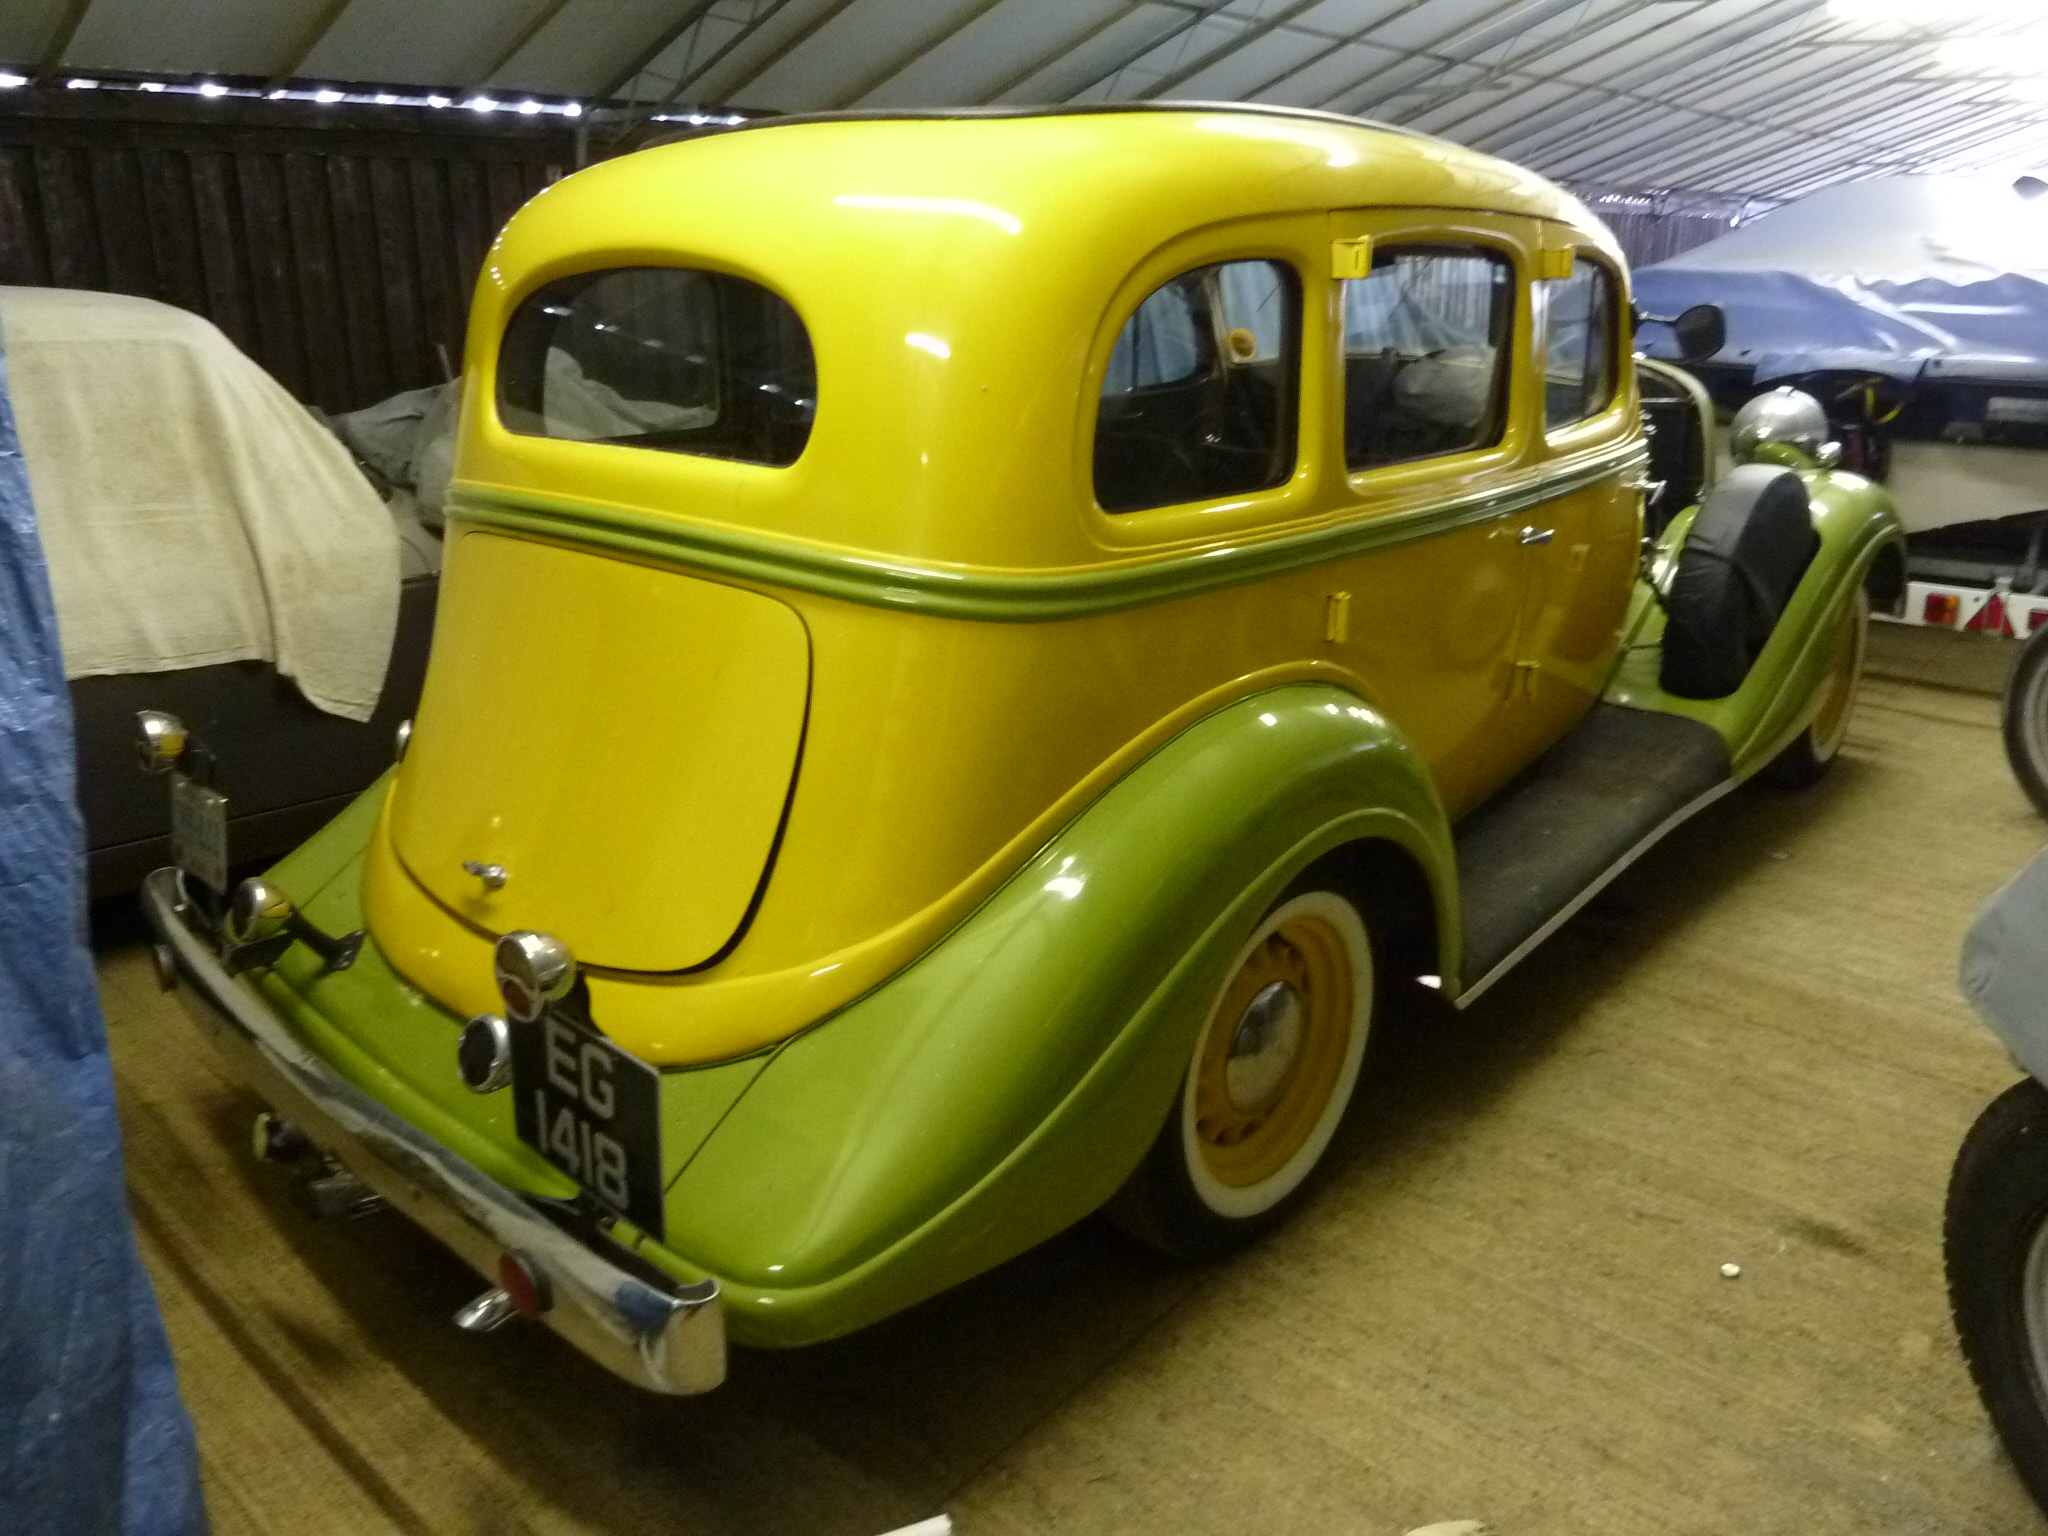 EG 1418 - 1934 Hudson Terraplane (Essex) | Flickr - Photo Sharing!